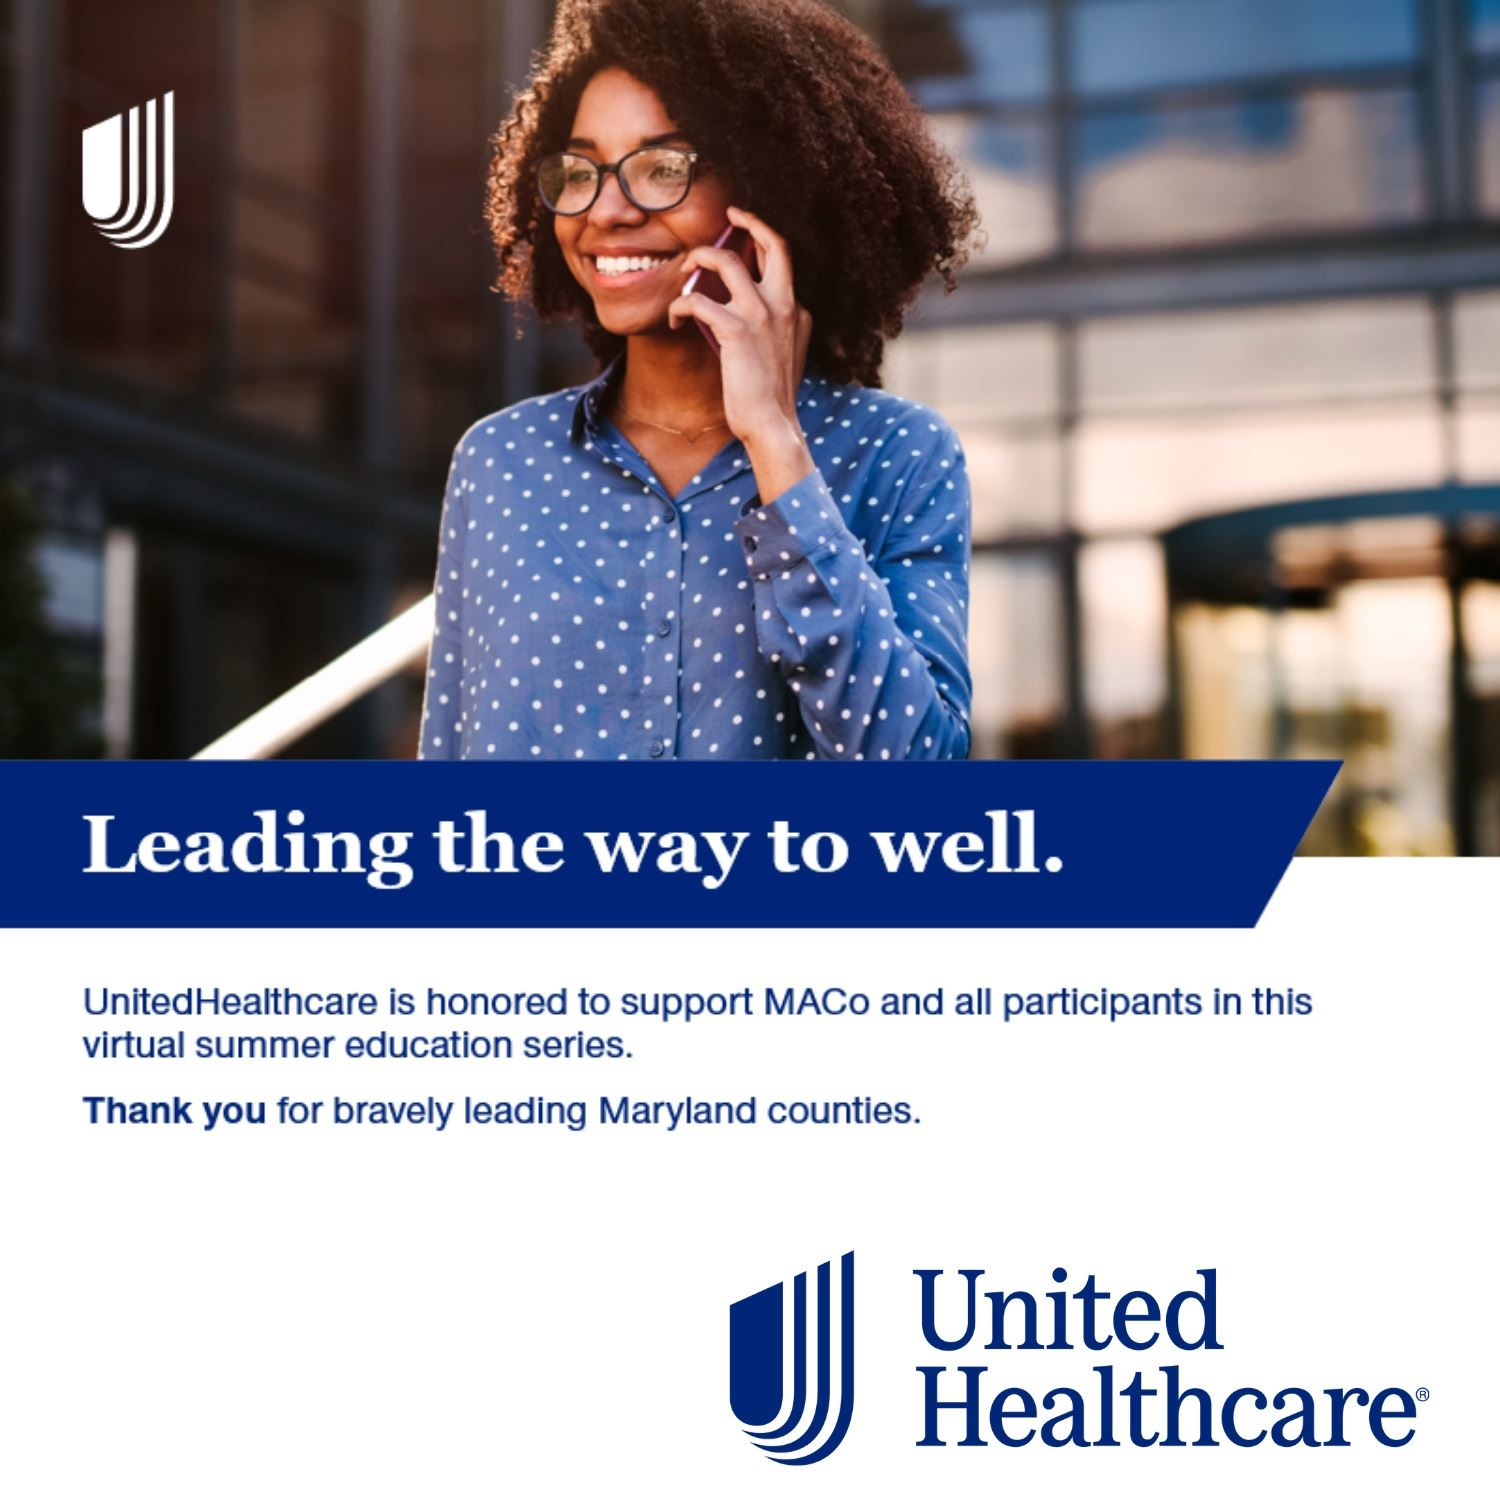 MACo 2020 UHC Summer Virtual Ad - to share